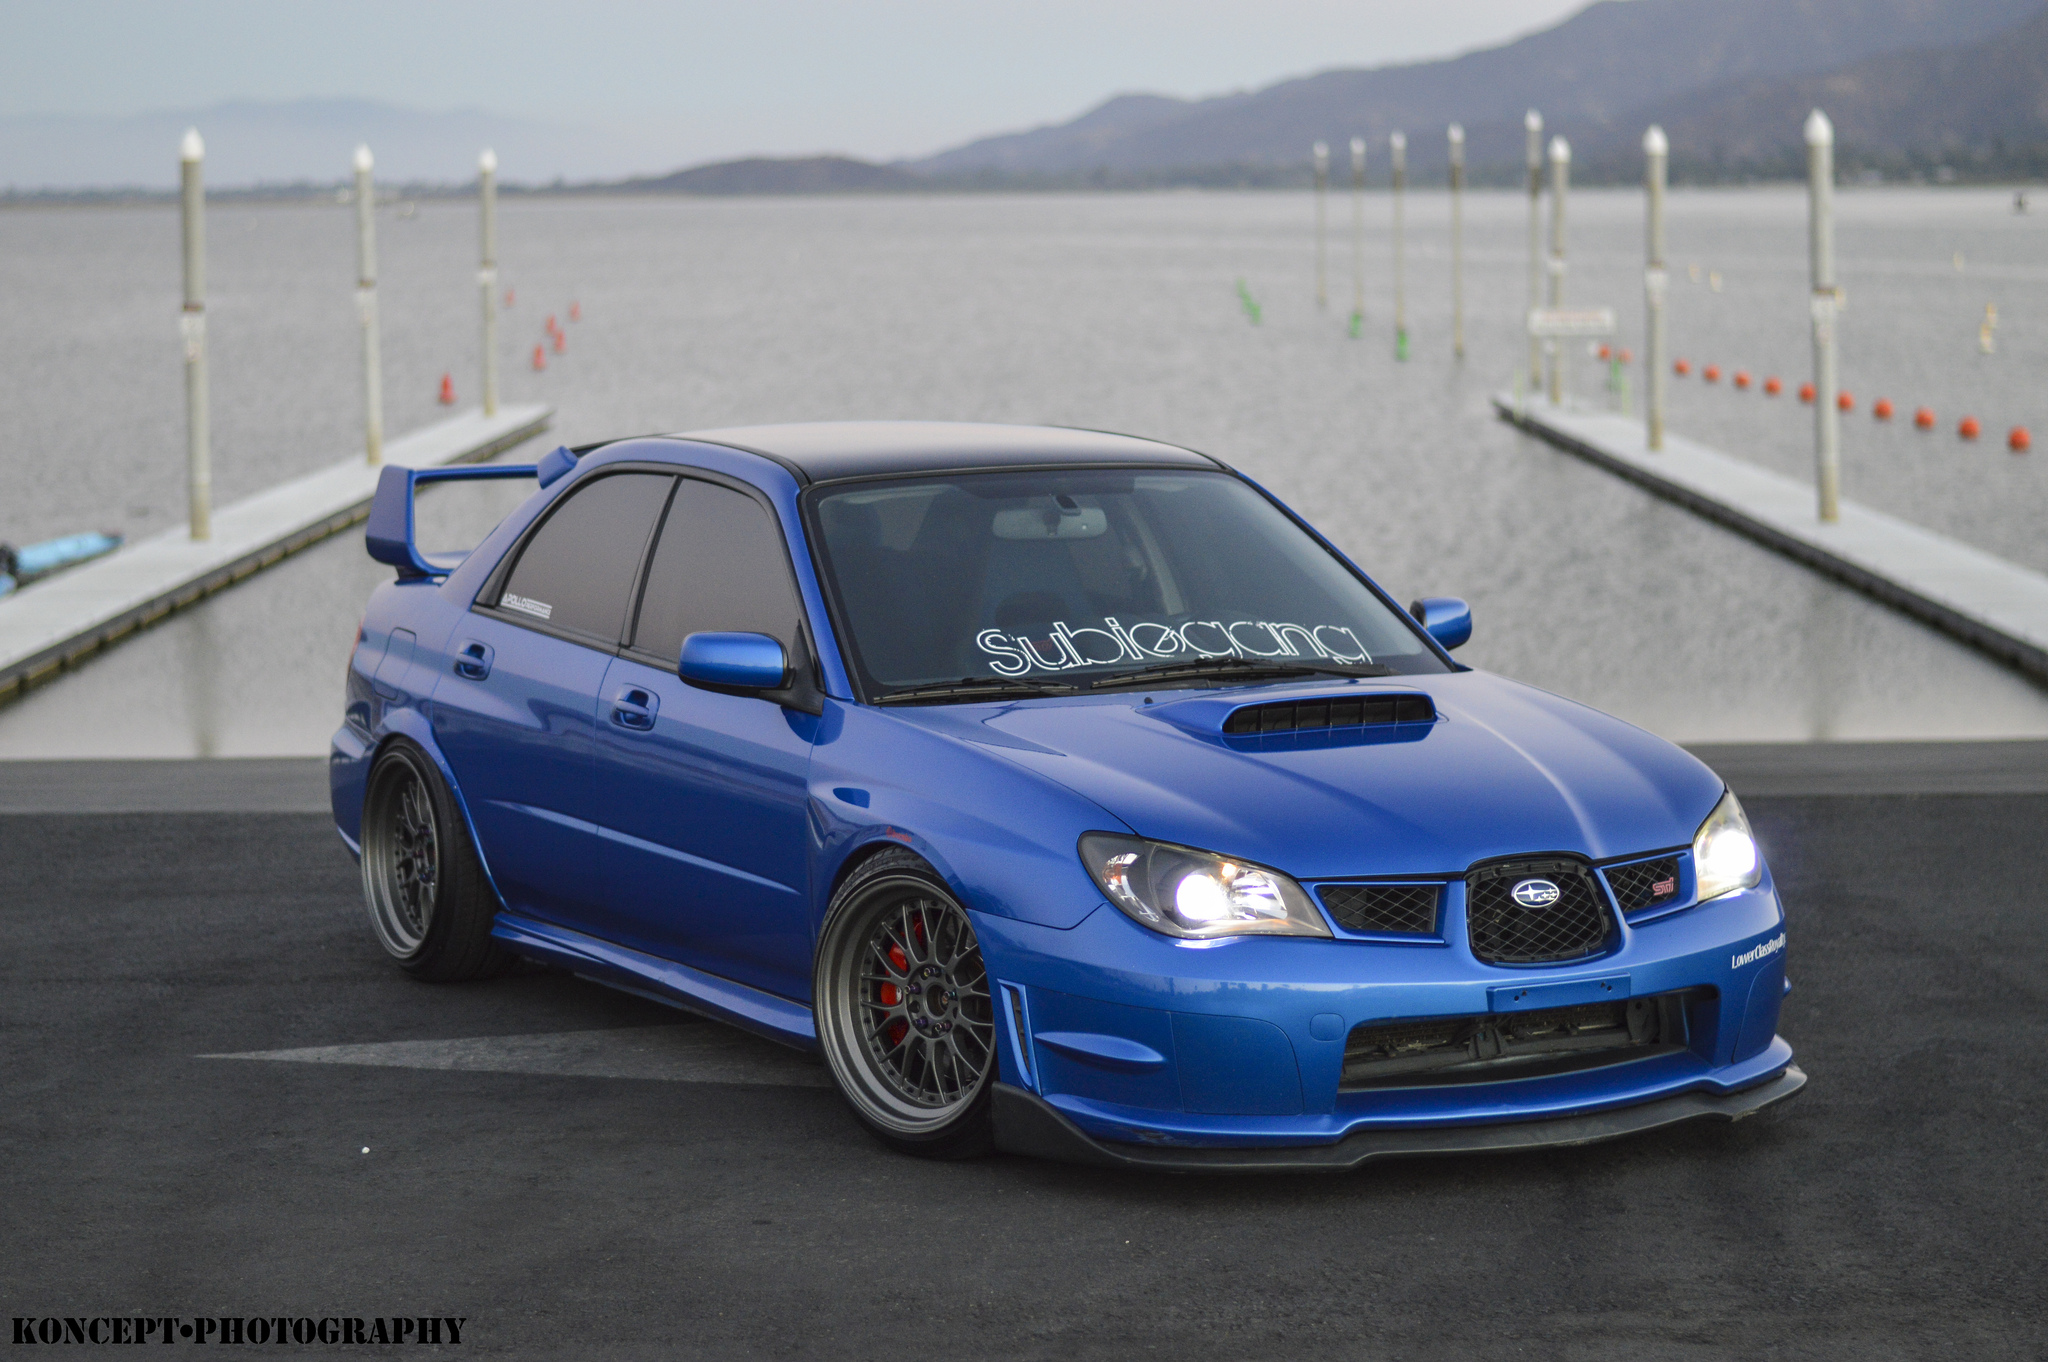 MPPSOCIETY mattcrutchfield Subaru STI XXR Wheels 03